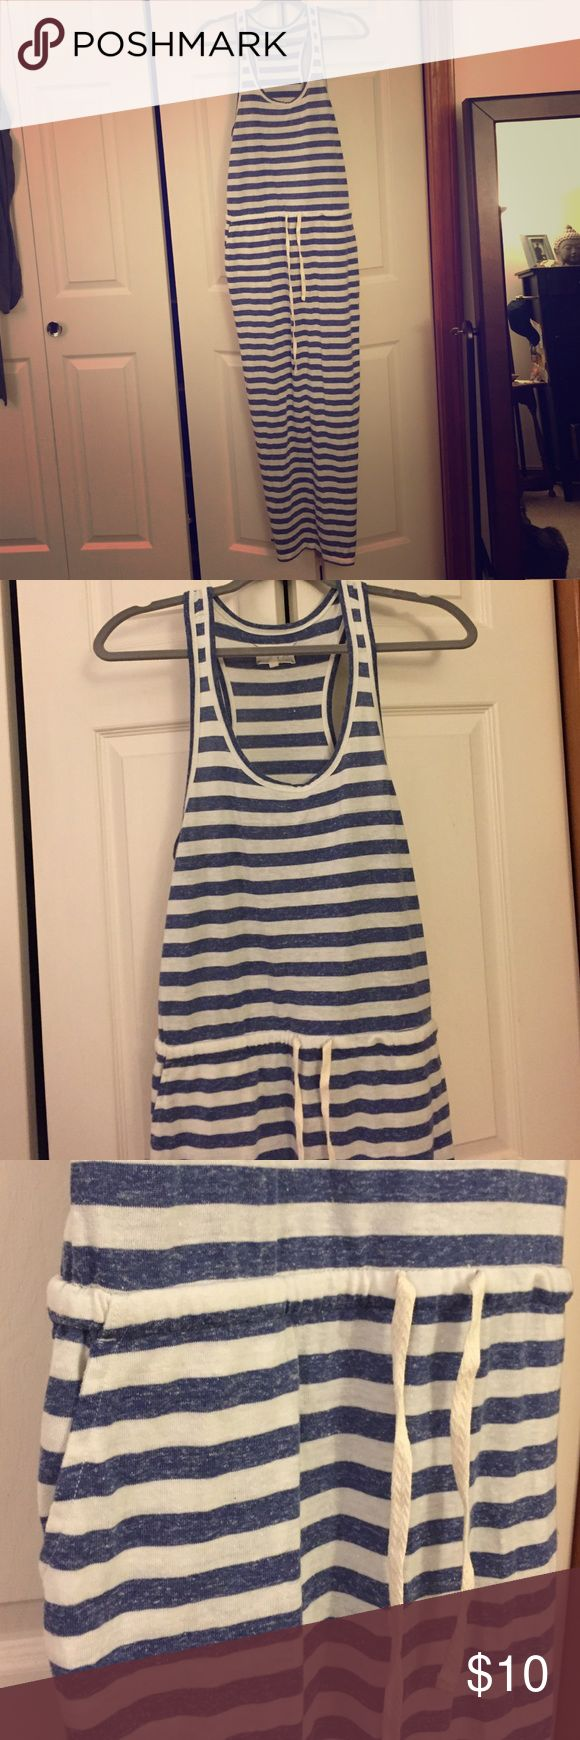 Striped maxi dress Blue and white stripes maxi. Draw string at waste. Pockets. Previously worn. Some pilling. VERY comfy. 🚫No trades Dresses Maxi